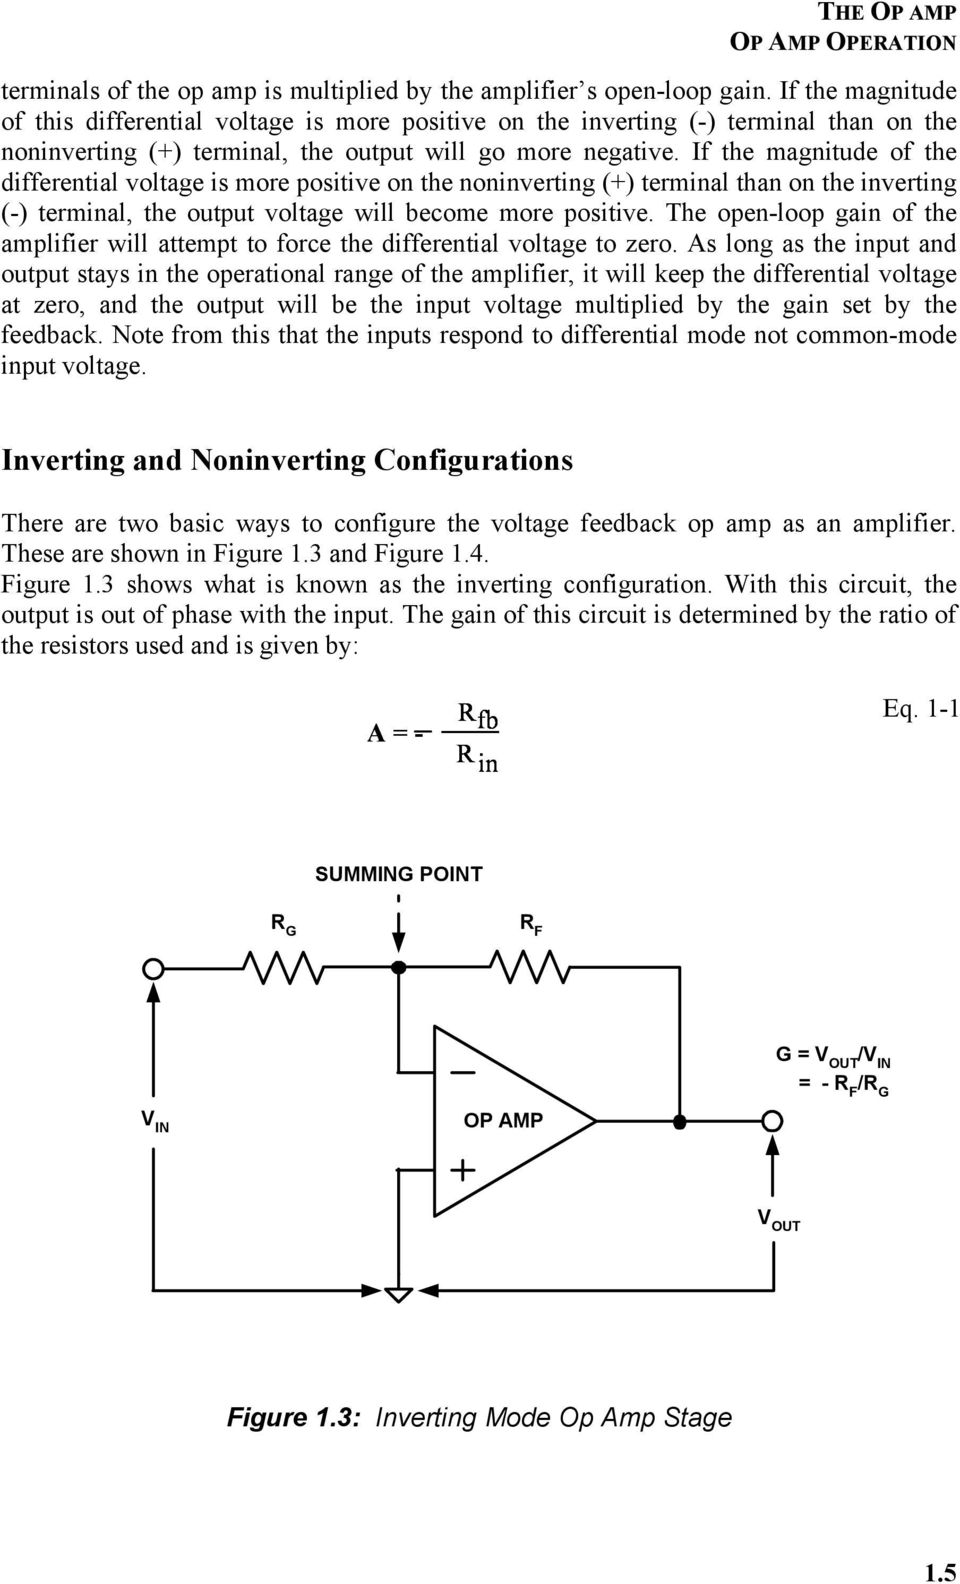 If the magnitude of the differential voltage is more positive on the noninverting (+) terminal than on the inverting (-) terminal, the output voltage will become more positive.